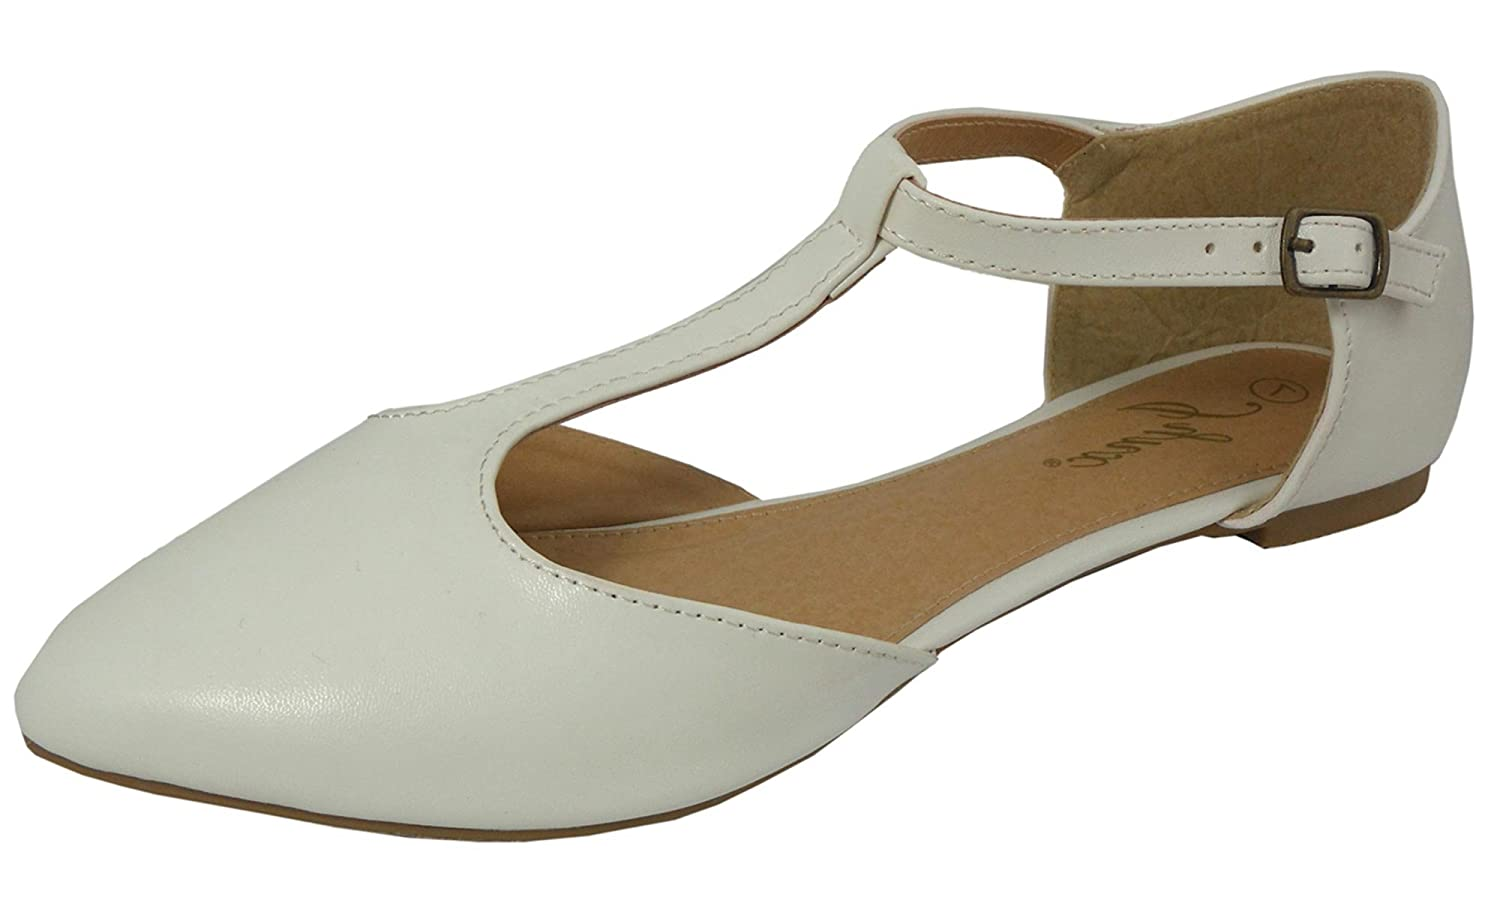 Retro Vintage Flats and Low Heel Shoes Jynx Womens Mary Jane T-Strap Pointed Toe Ballet Flat $21.25 AT vintagedancer.com